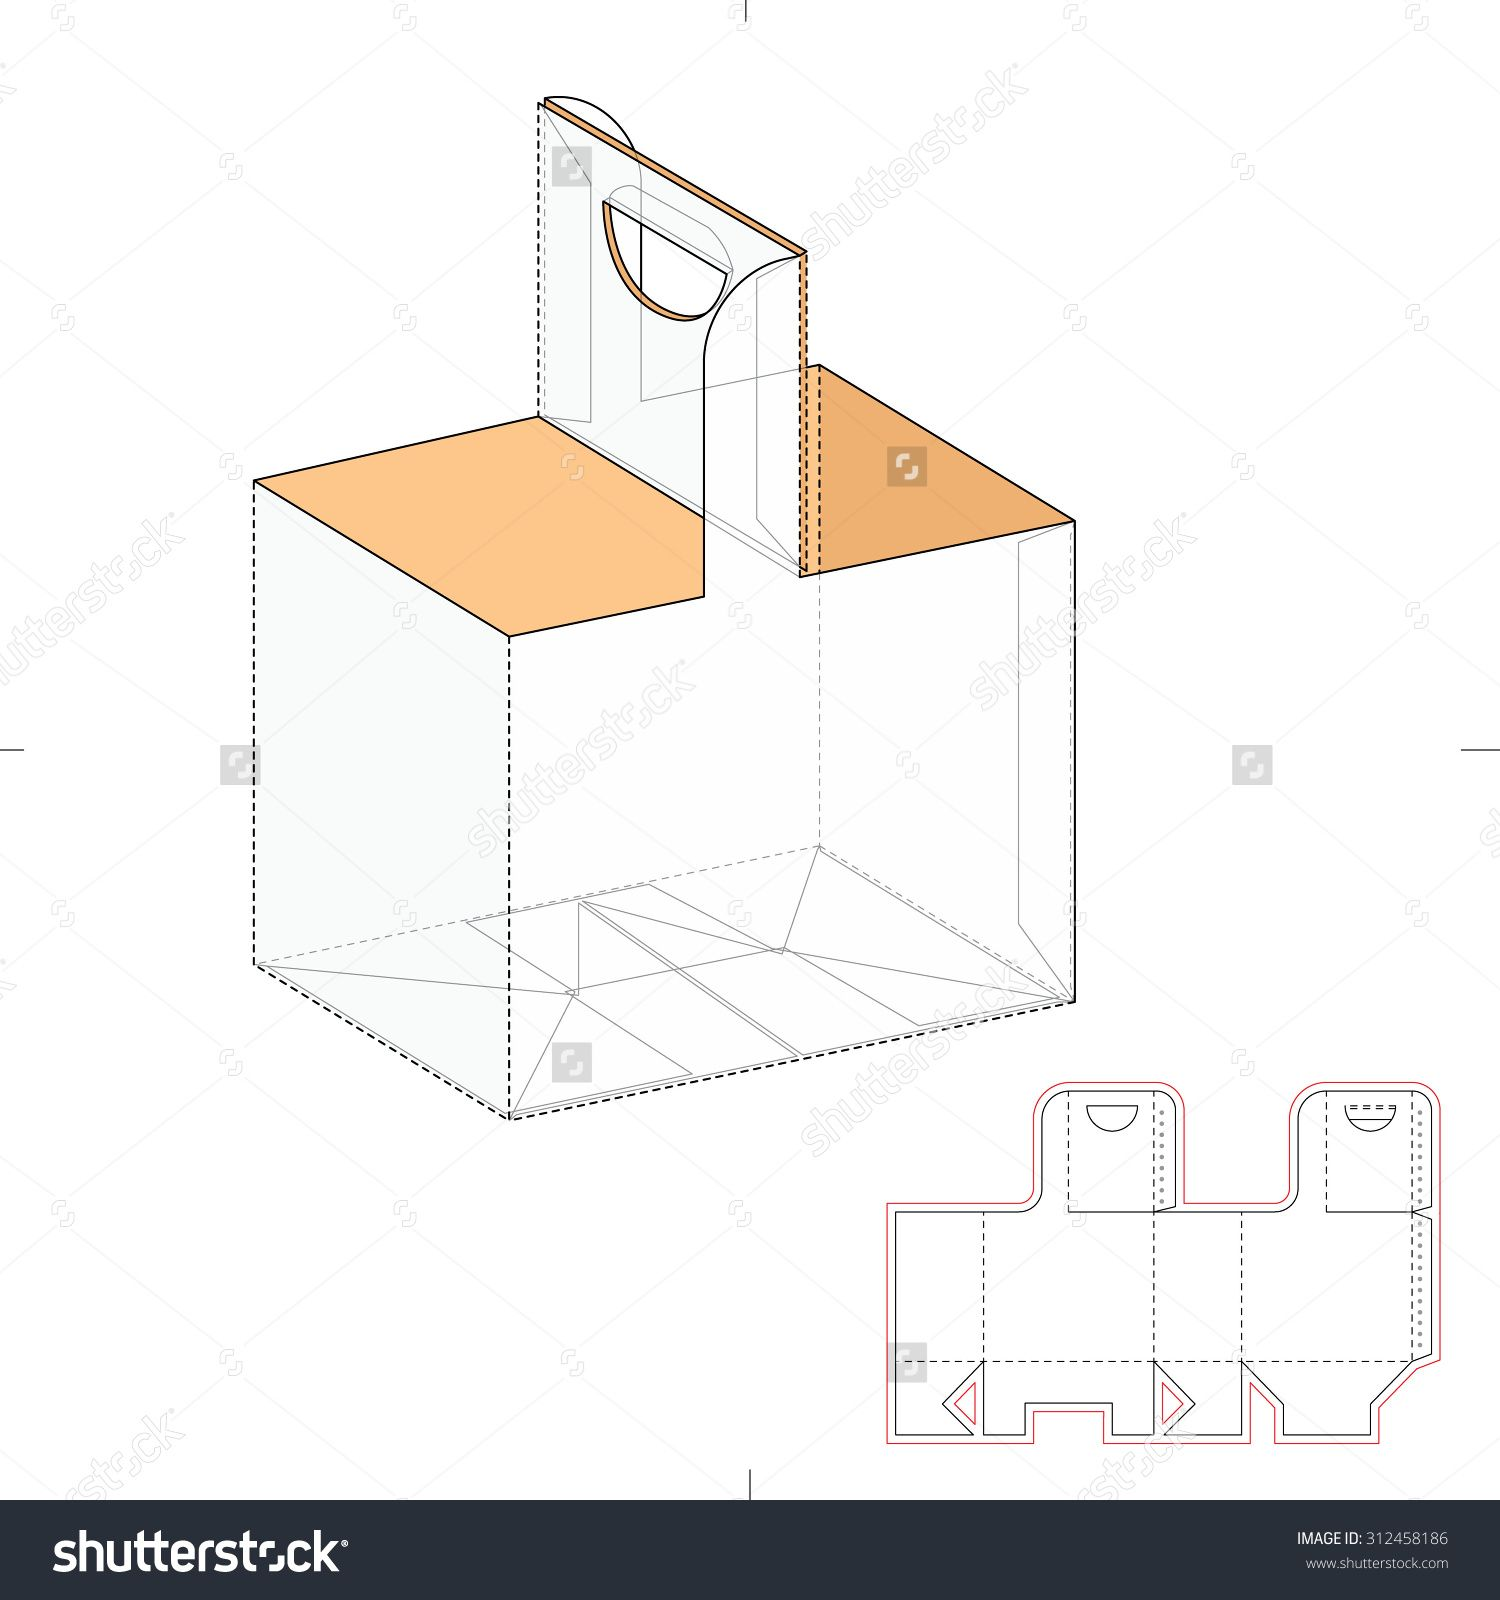 Box carrier with die line template stock vector illustration box carrier with die line template stock vector illustration 312458186 shutterstock pronofoot35fo Gallery